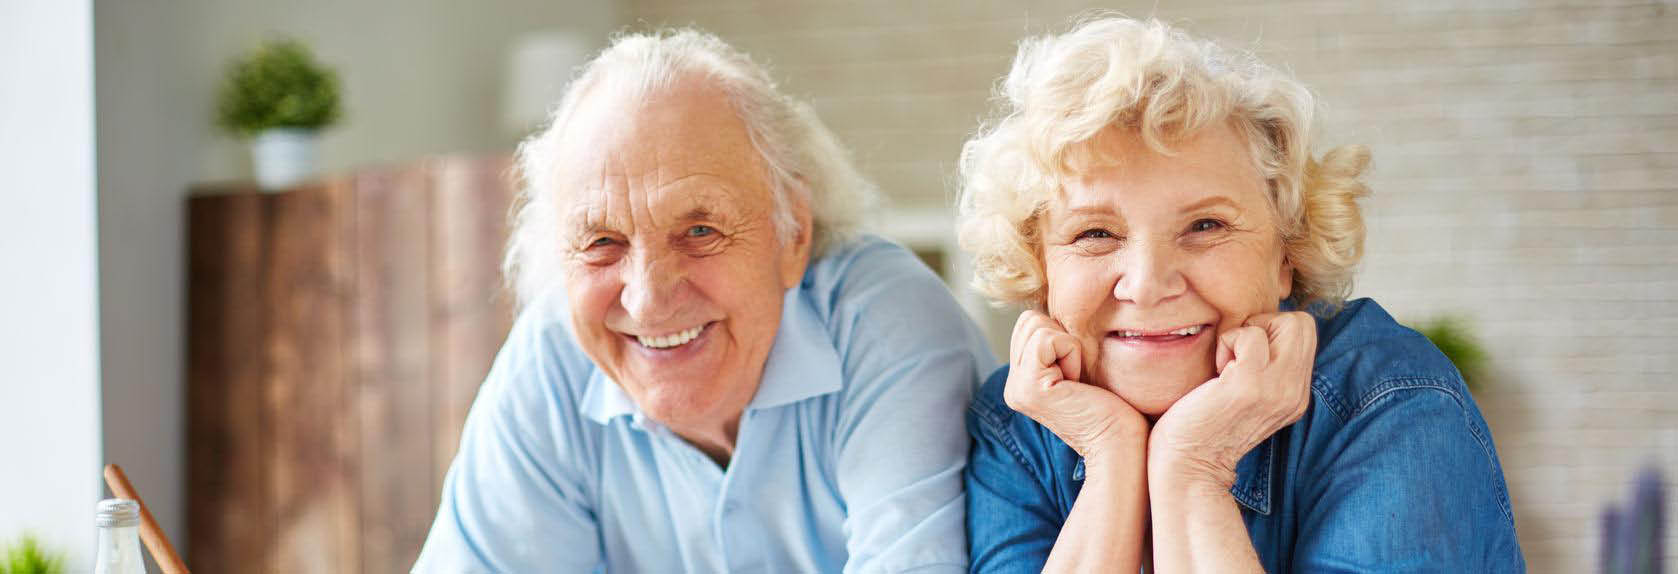 Senior couple smiling together with better hearing.